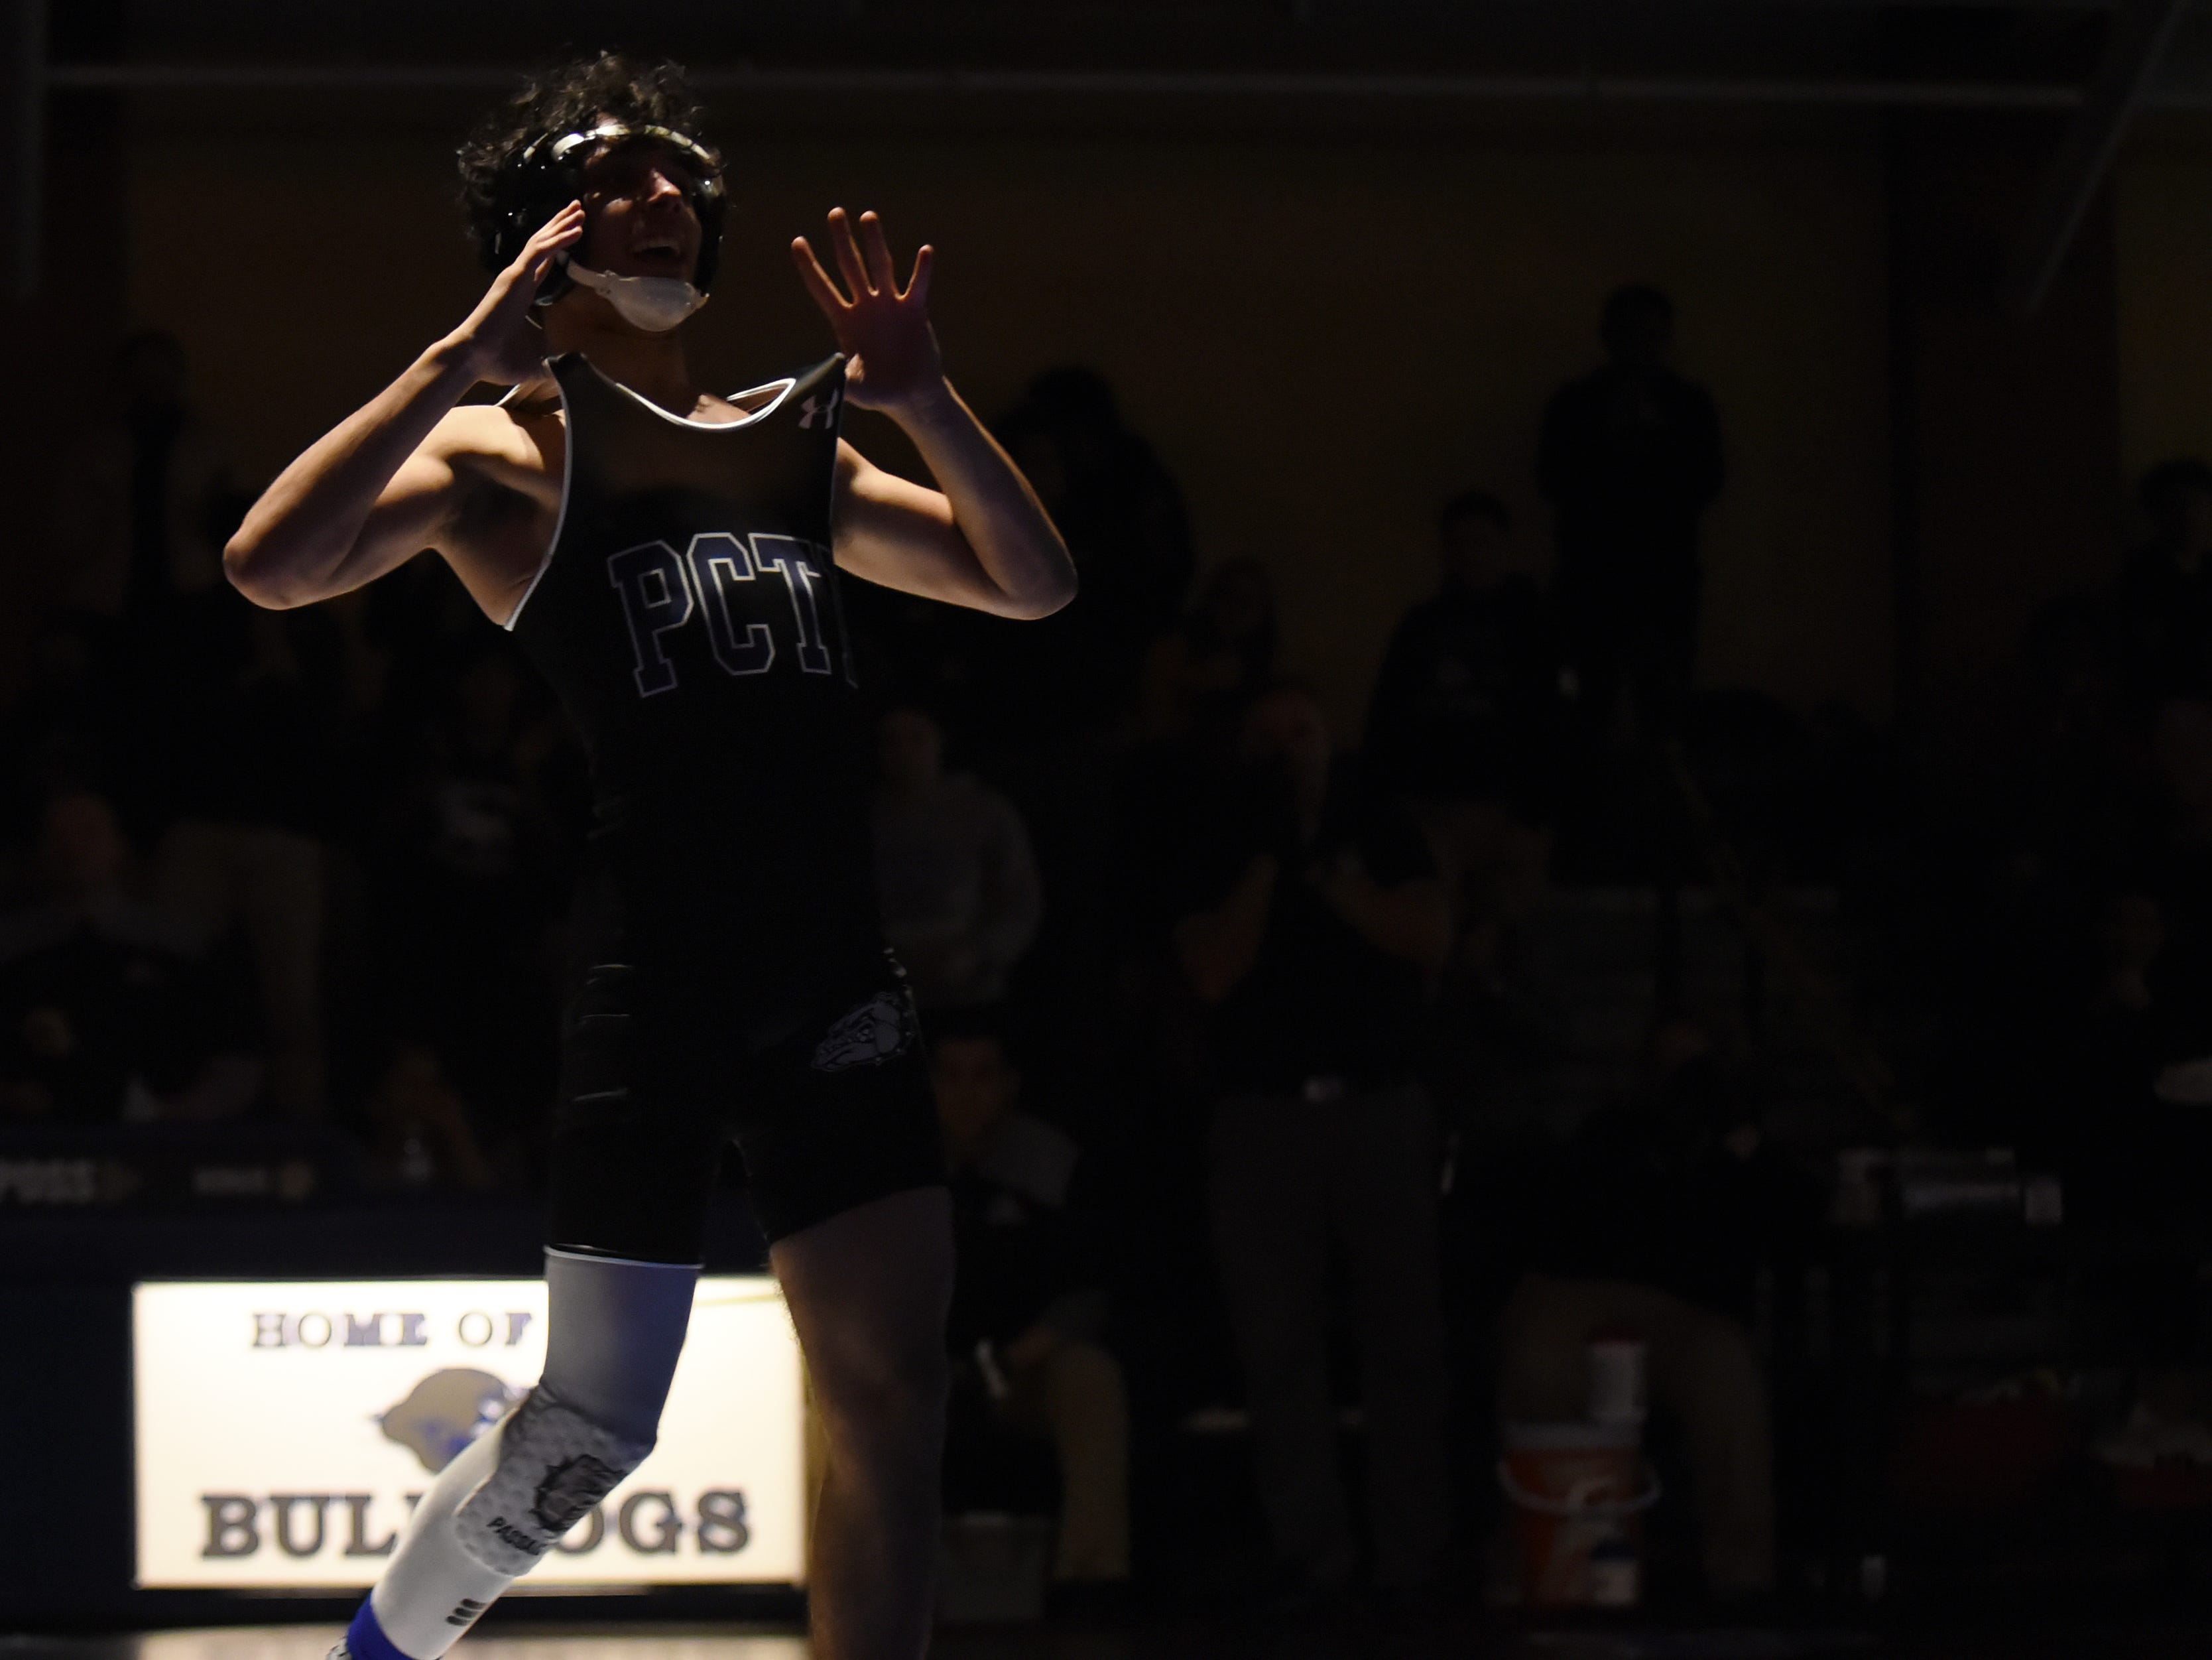 Passaic County Technical Institute wrestles Livingston High School for the North 1, Group 5 section championship at PCTI in Wayne on Friday February 8, 2019. At 126 pounds Mohammad Abu-Awad with PCTI celebrates beating Agostino Petrillo with LHS.